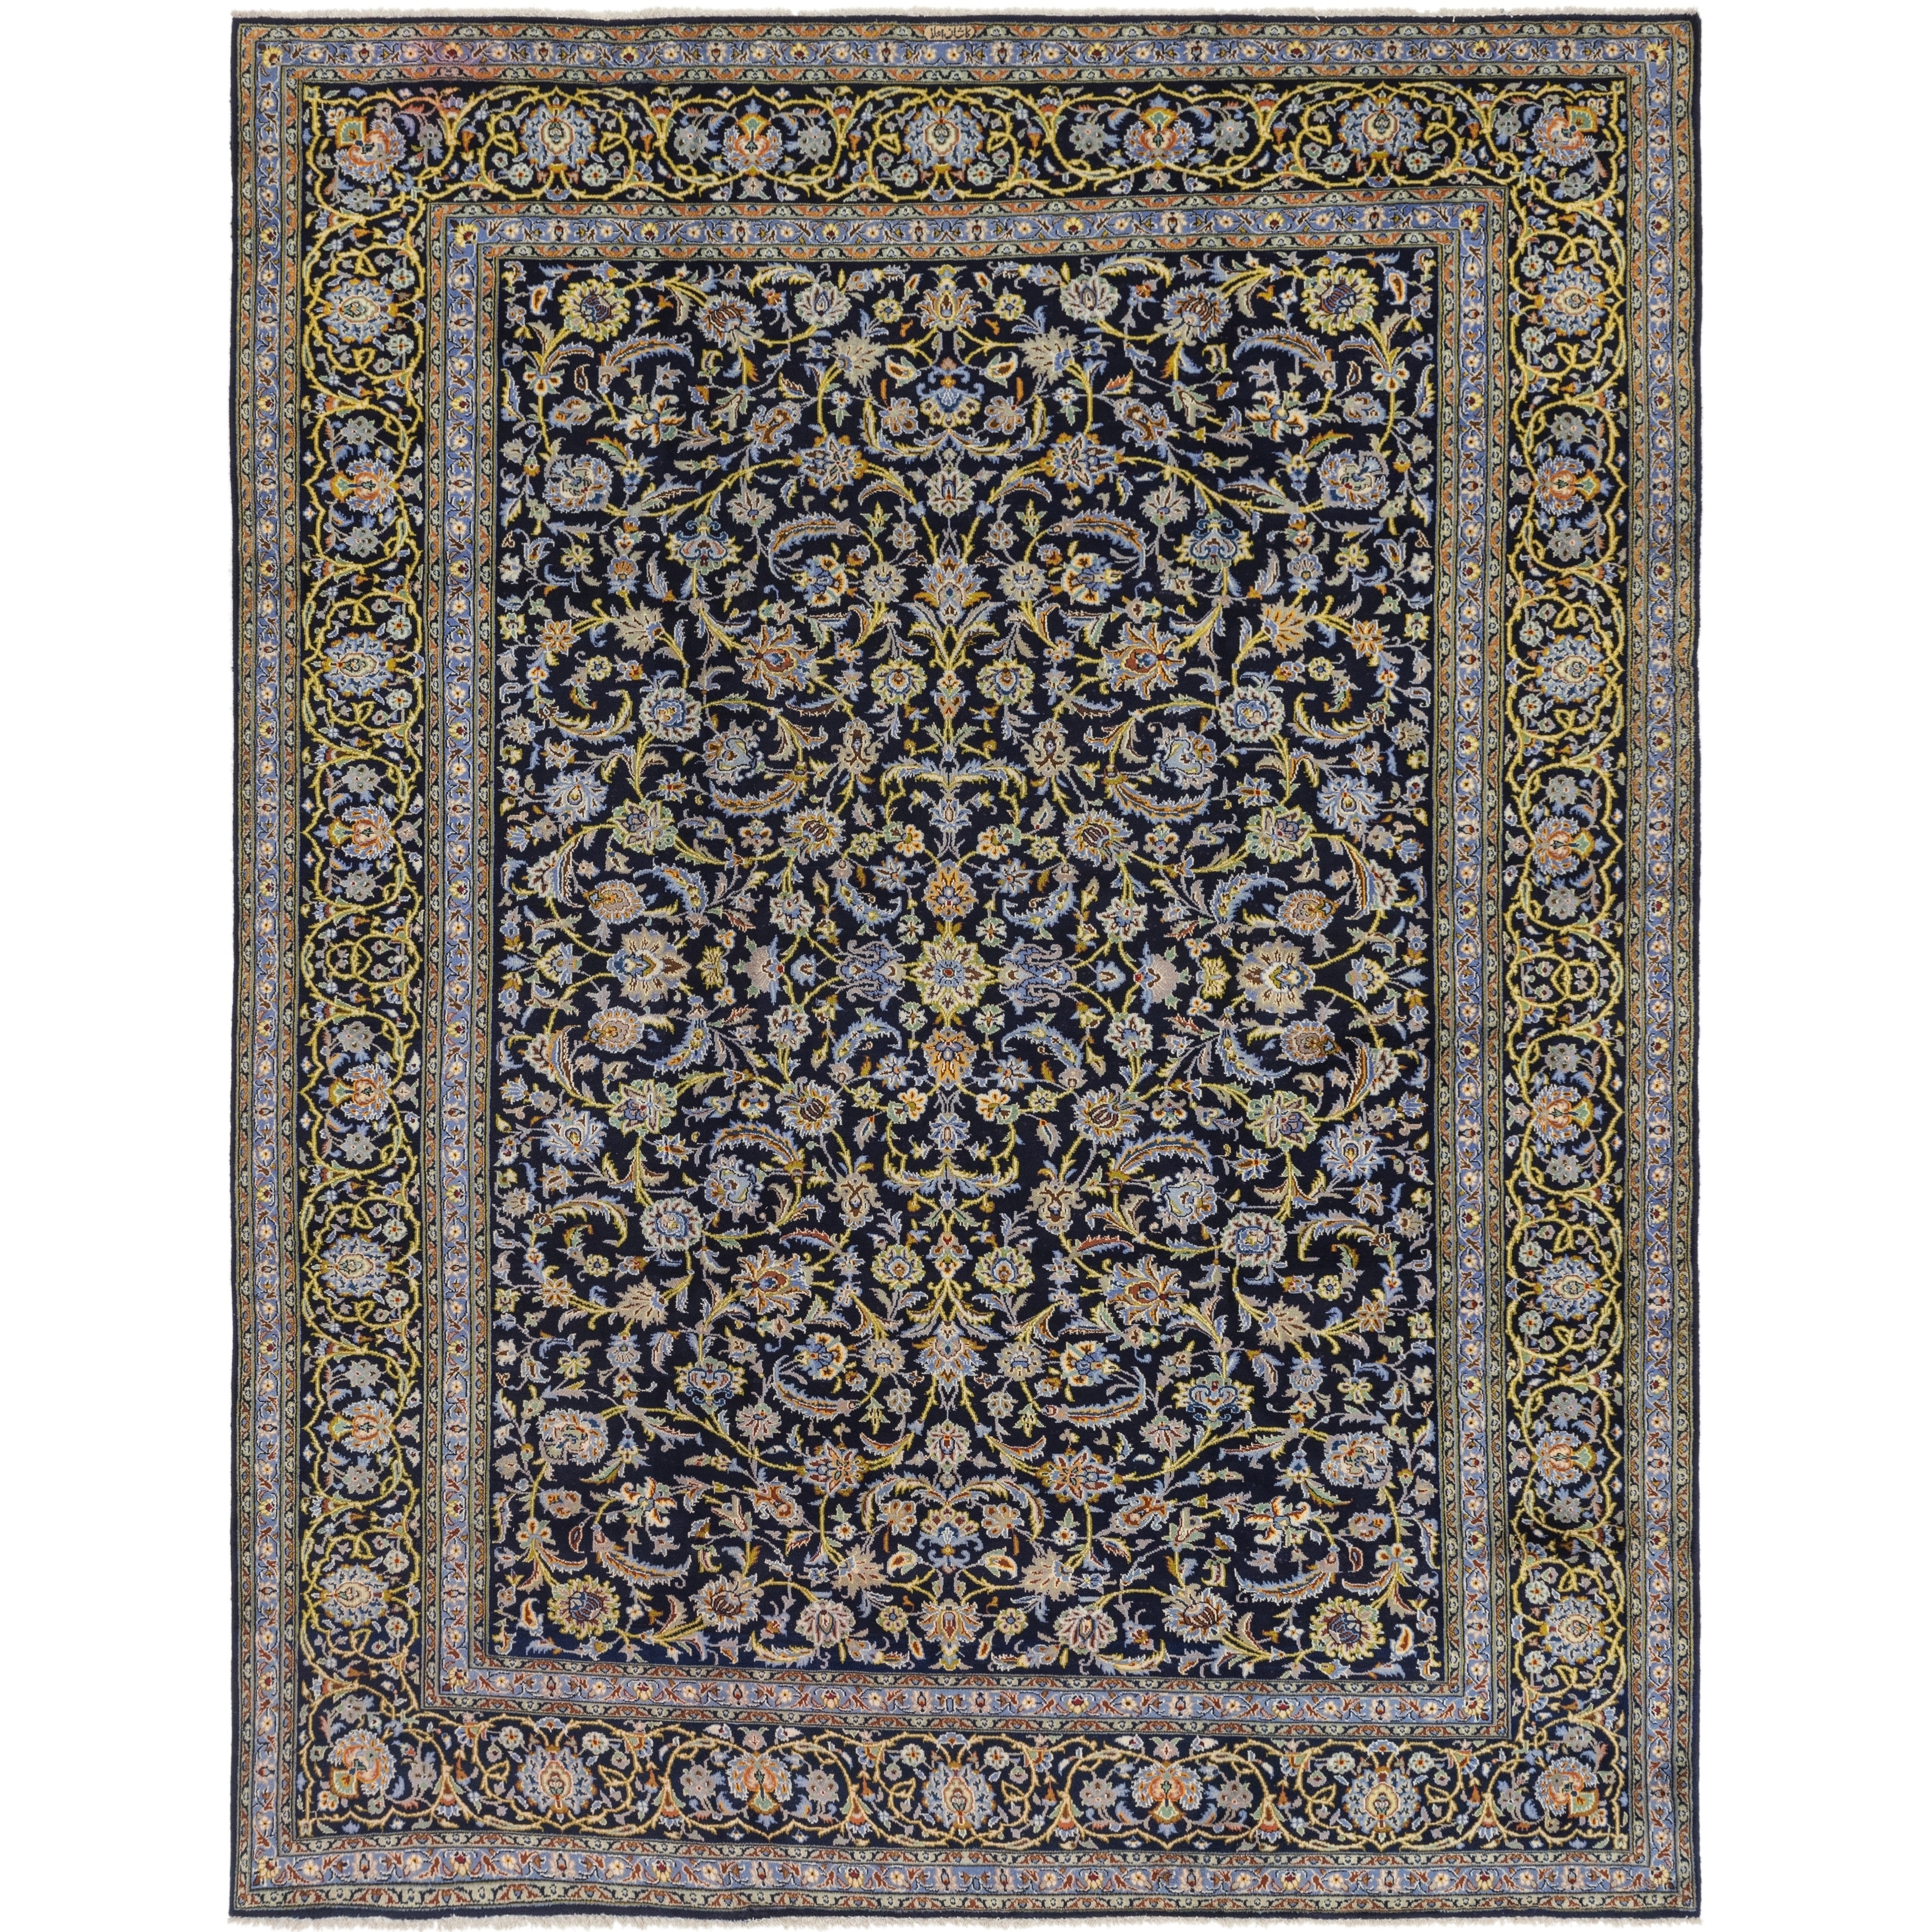 Hand Knotted Kashan Wool Area Rug - 10 x 12 10 (Navy blue - 10 x 12 10)